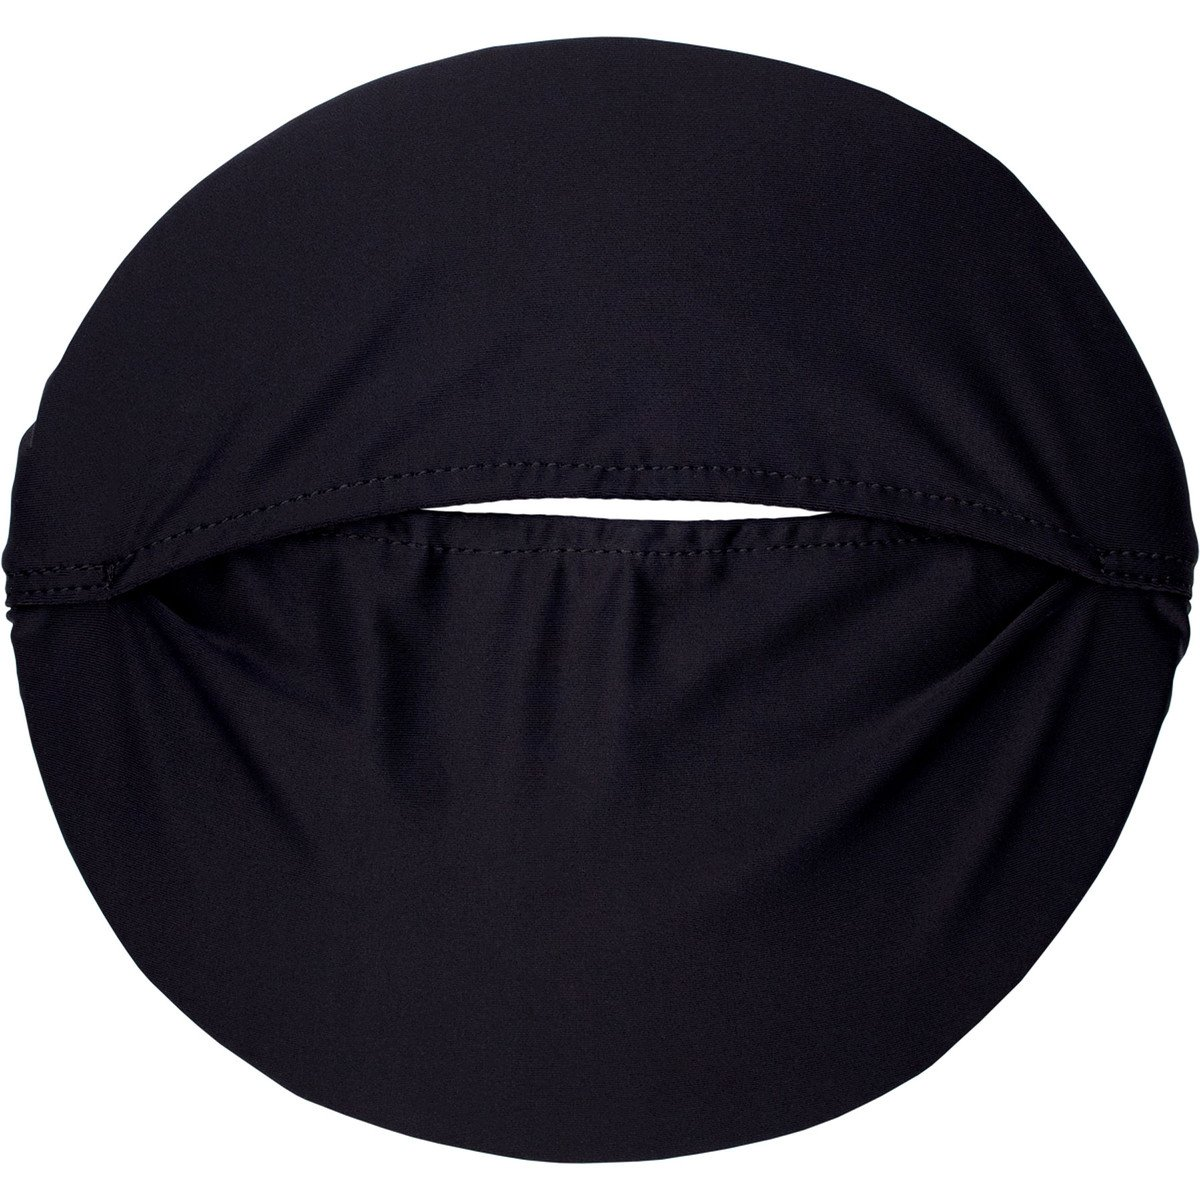 Protec Bell Cover For French Horns - 11-13 Diameter